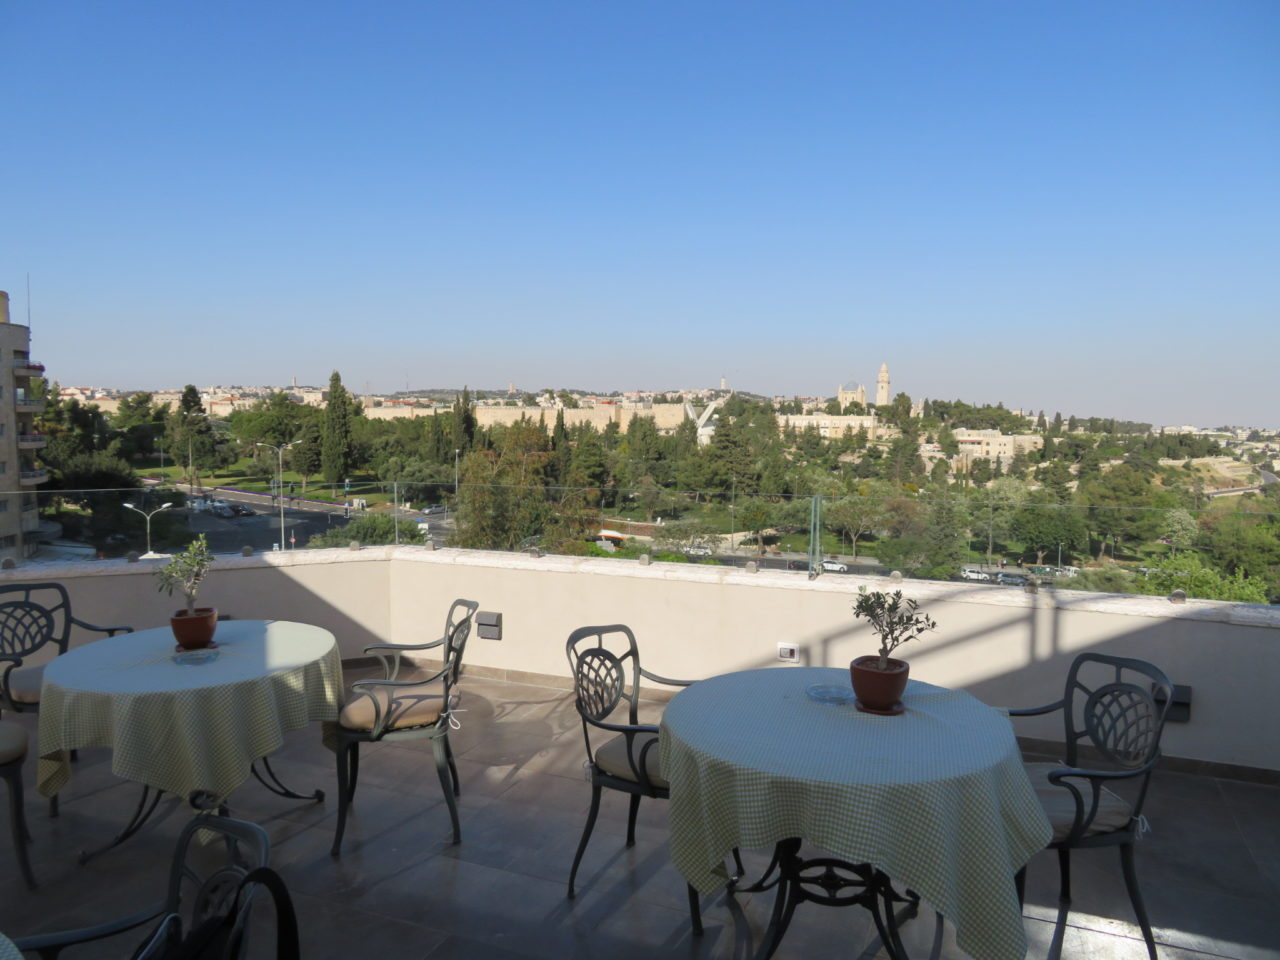 Vacationing in Israel ... View of Old Jerusalem from the Inbal Hotel